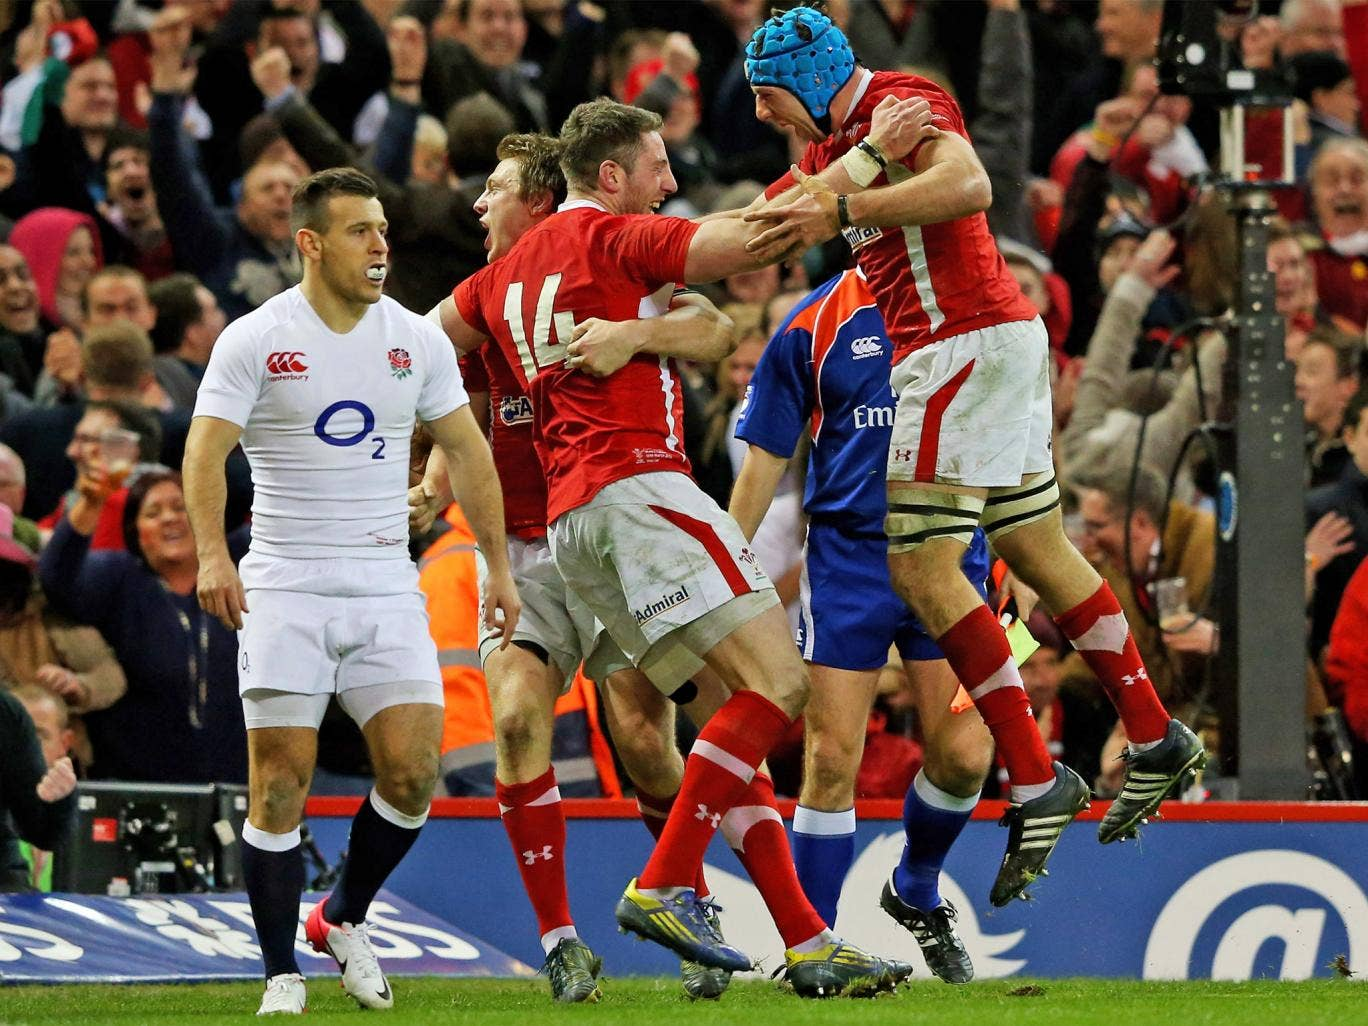 Stuart Lancaster says England have not been scarred by their heavy defeat at the hands of Wales in last year's title decider